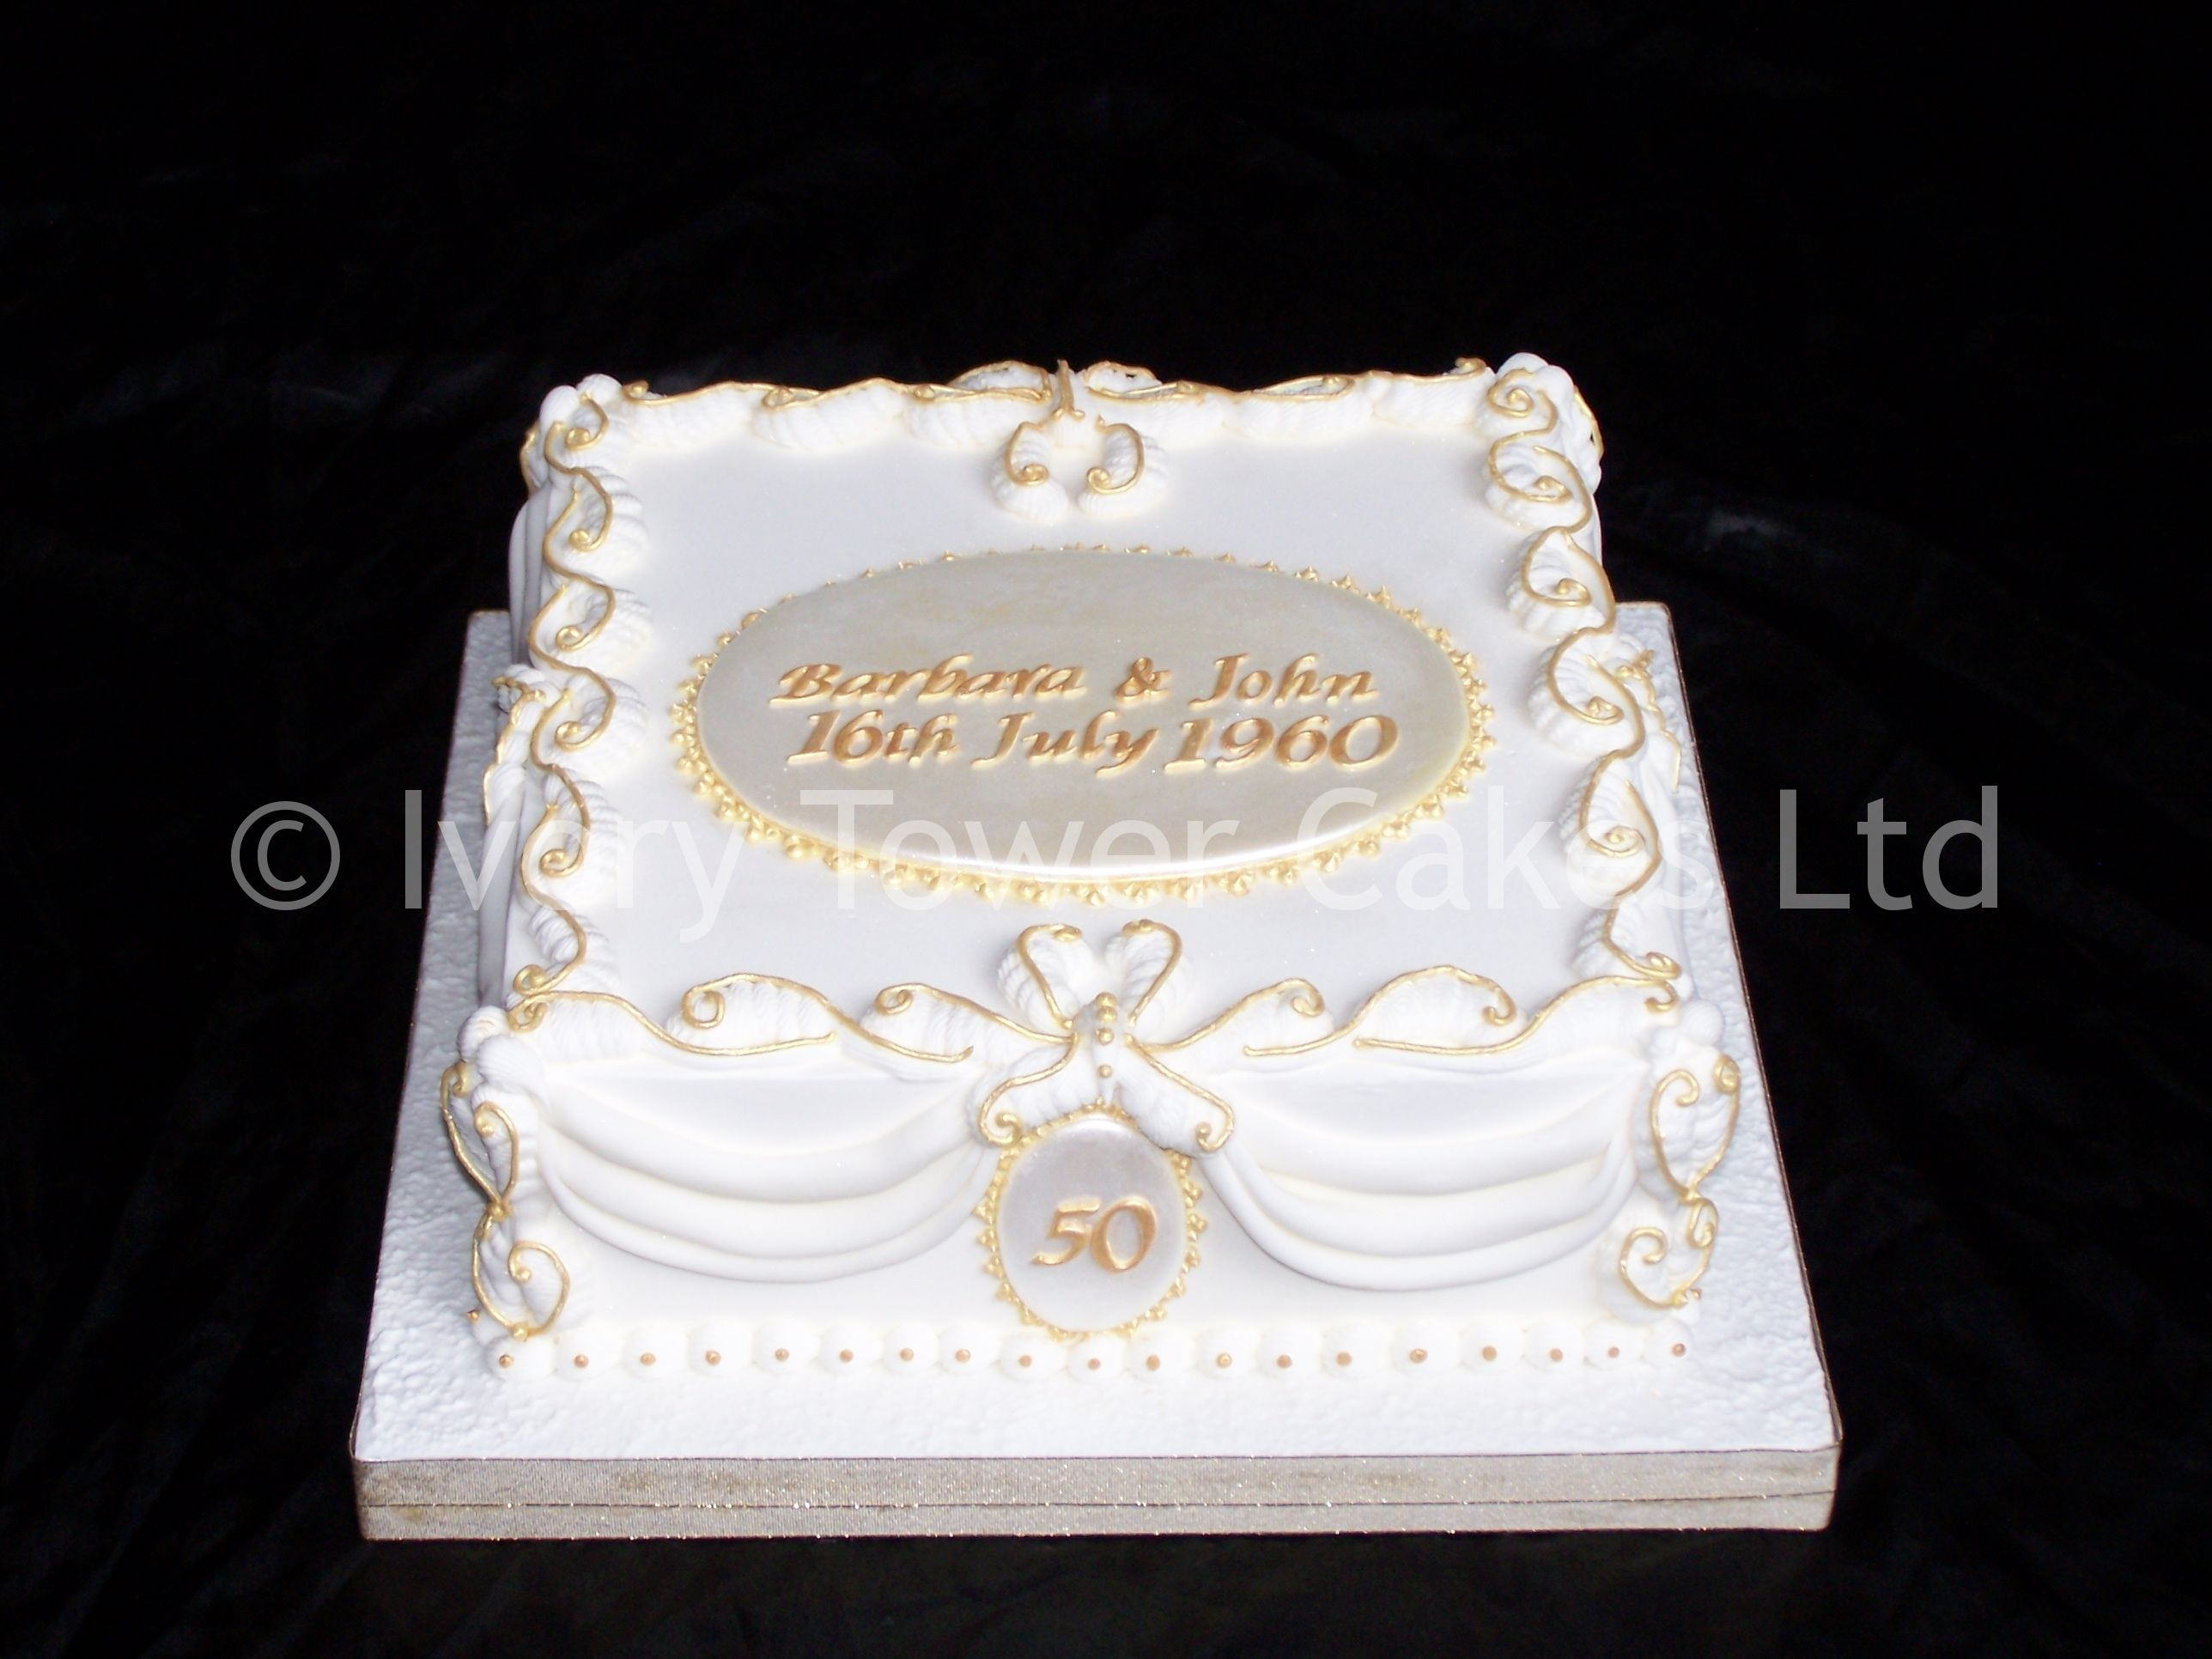 50th birthday cakes in glasgow image inspiration of cake and